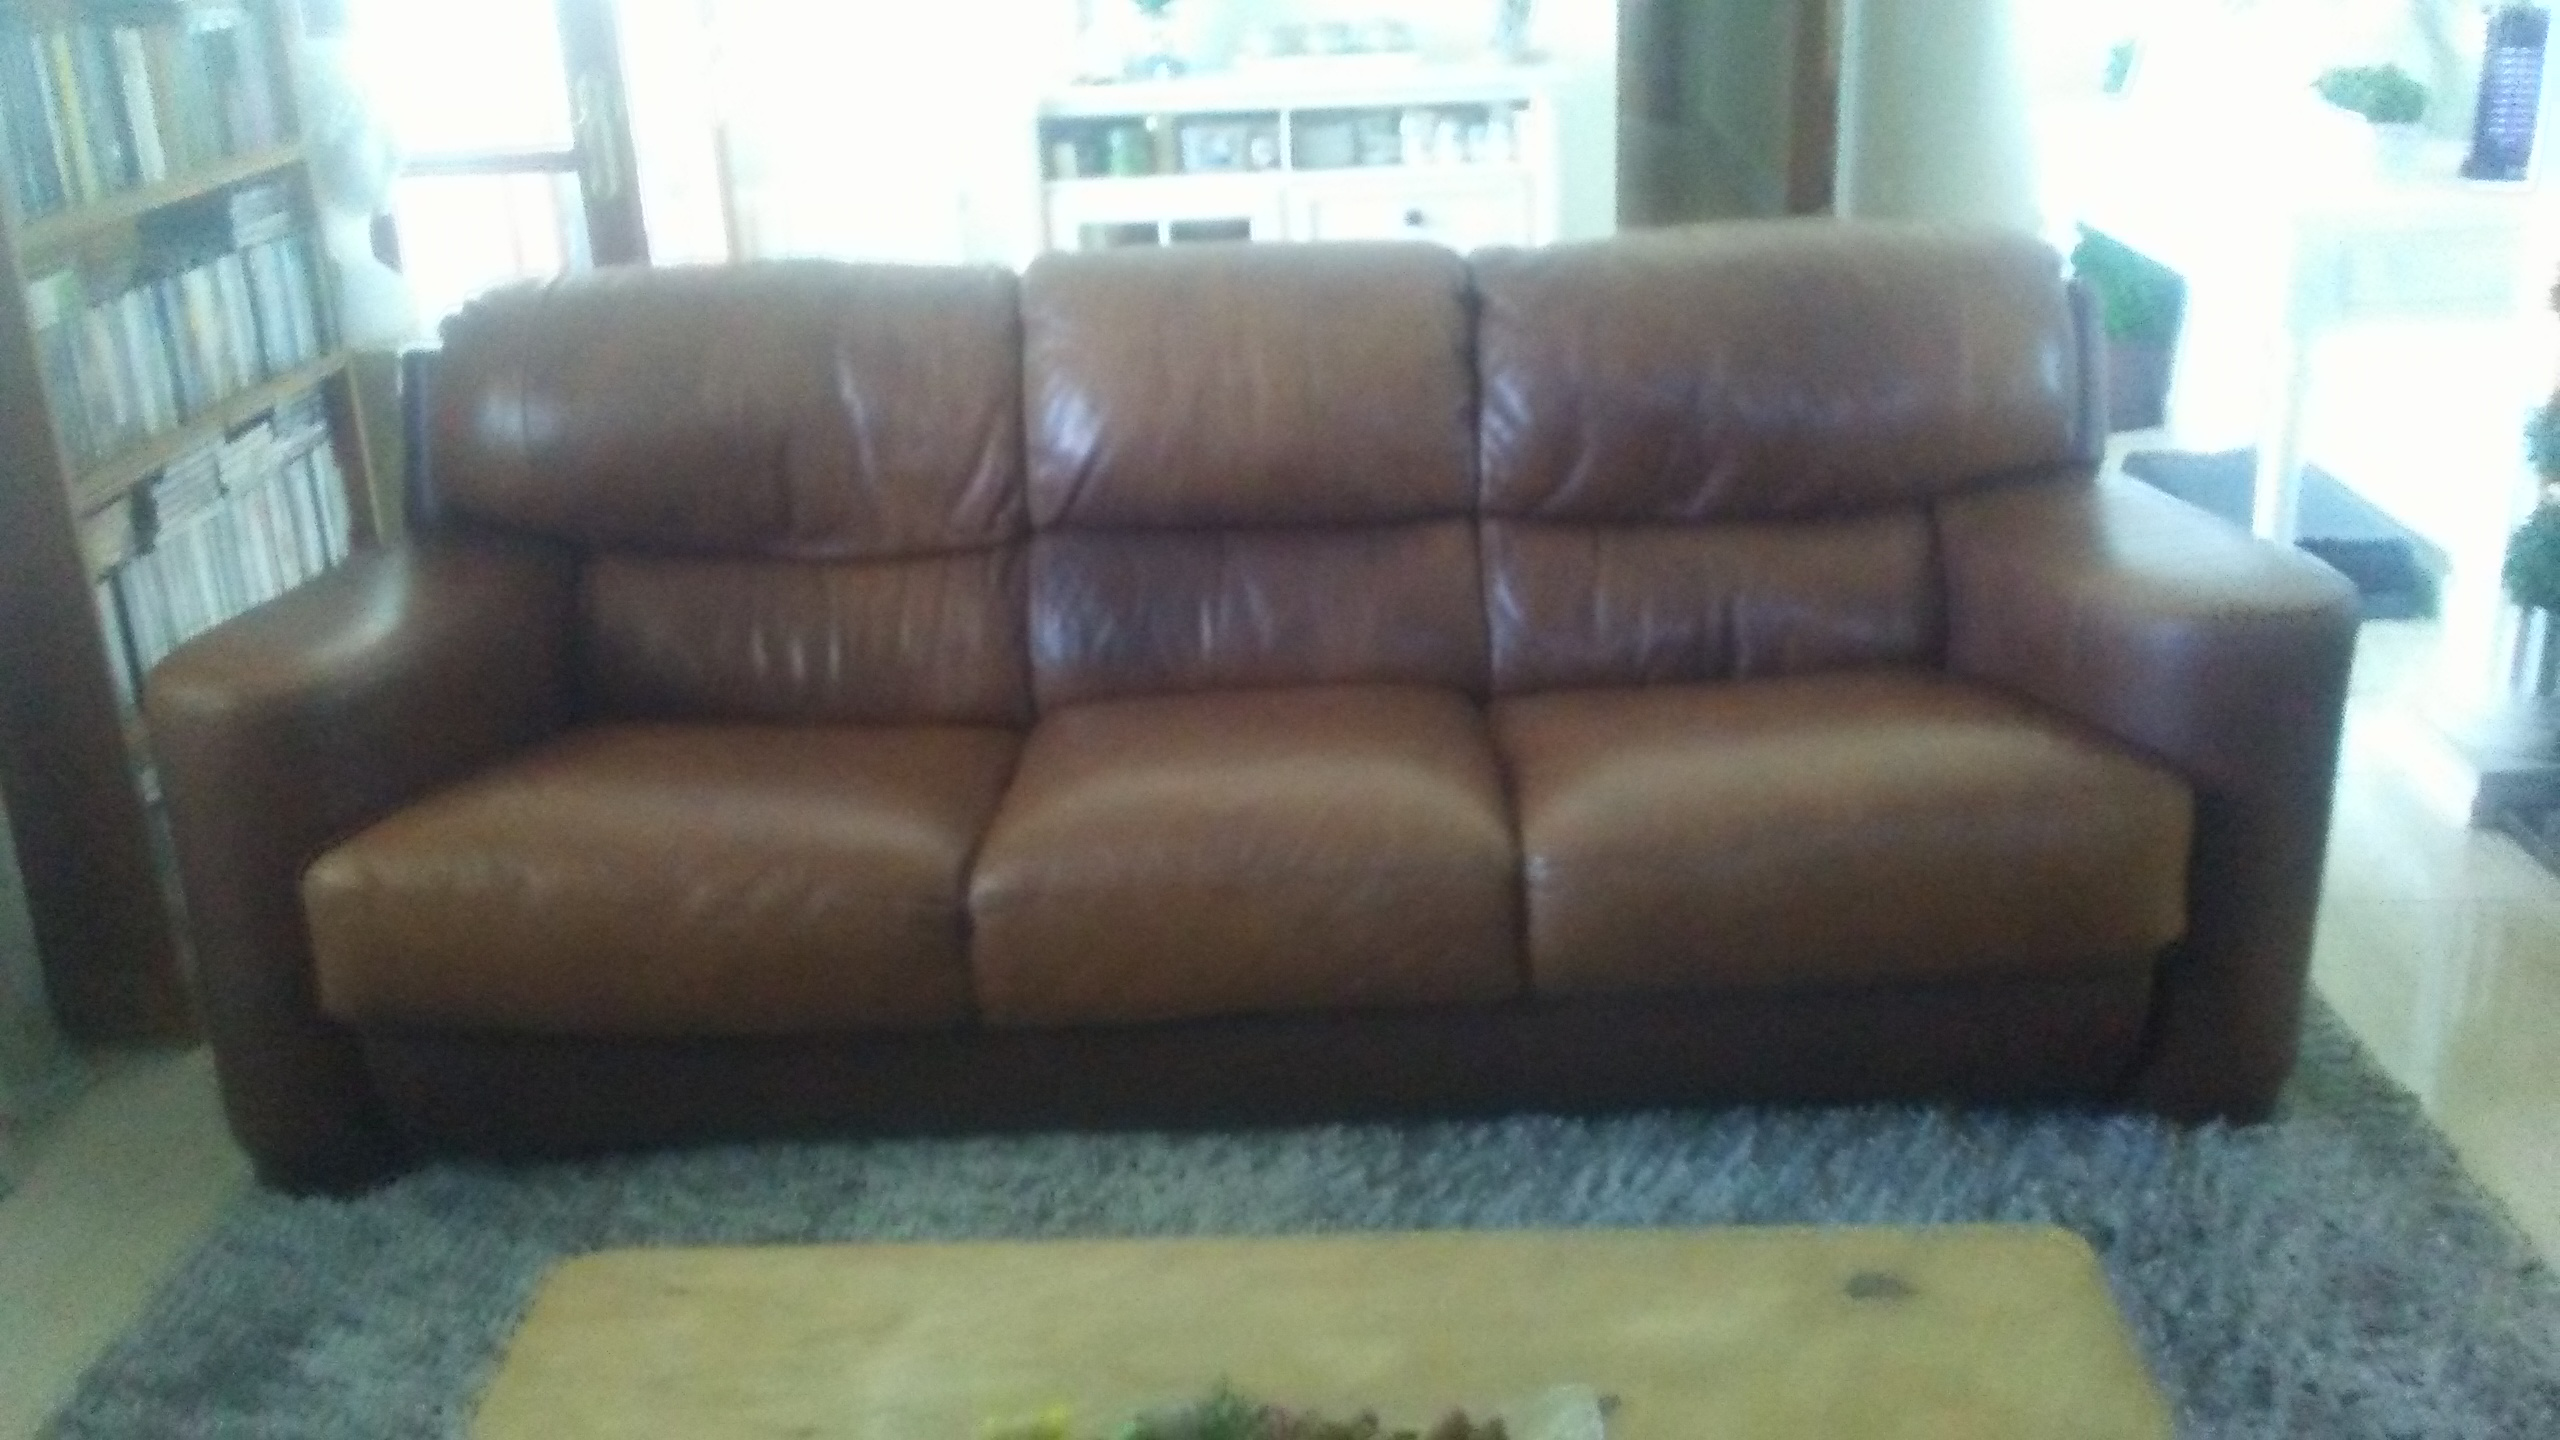 Fabulous For Sale Large Comfortable Brown Leather Sofa Now Reduced Pdpeps Interior Chair Design Pdpepsorg